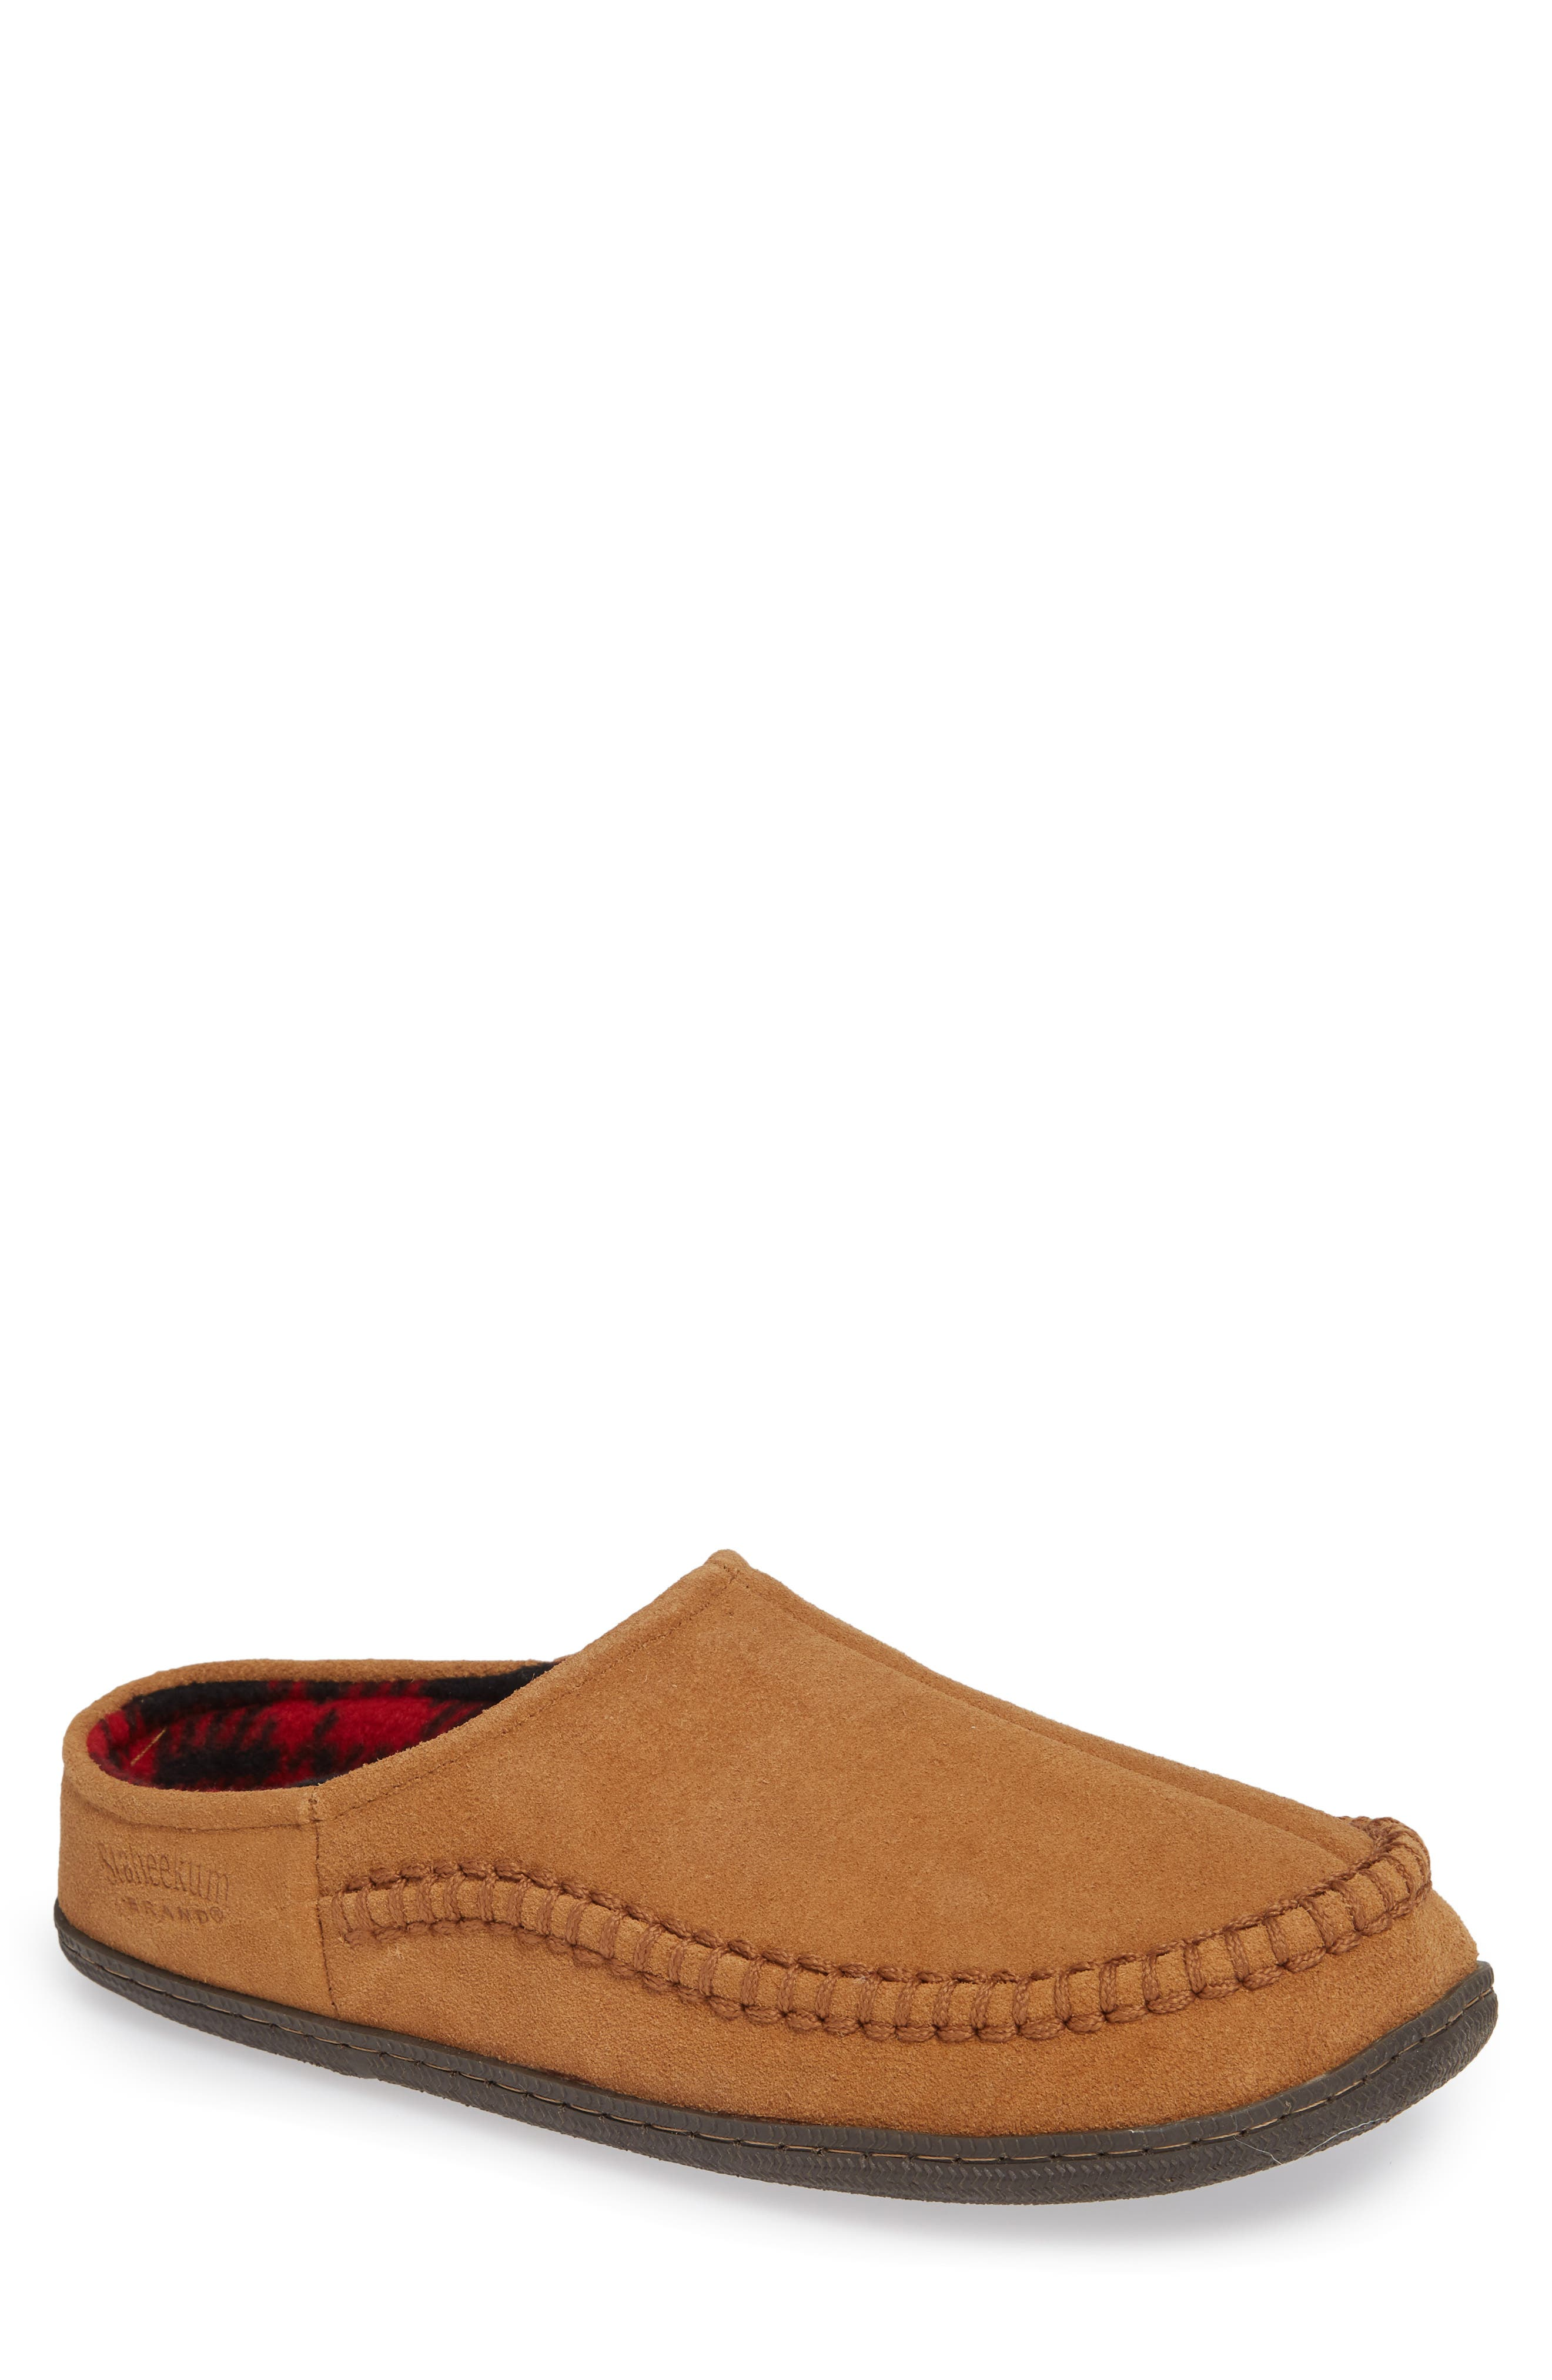 Cypress Flannel Lined Slipper,                         Main,                         color,